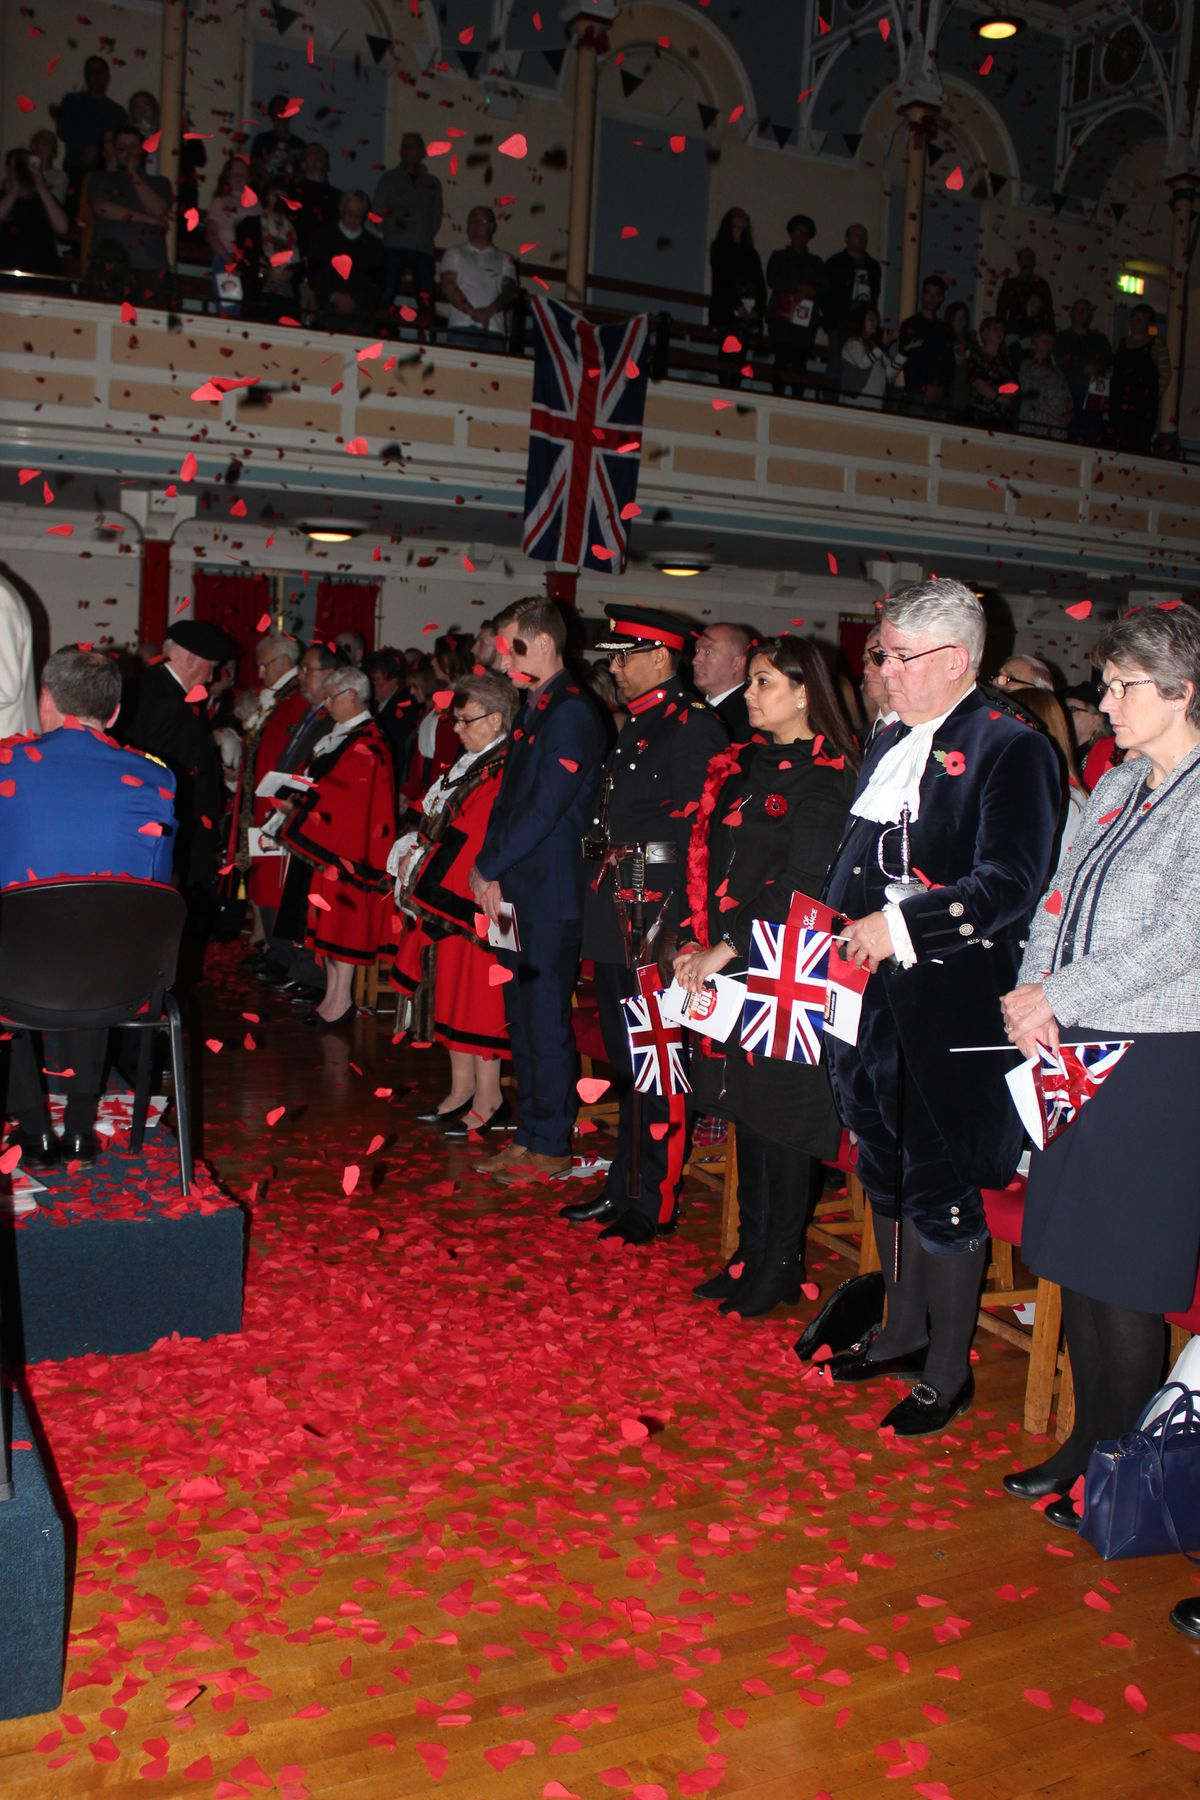 The 'poppy drop' at West Bromwich Town Hall